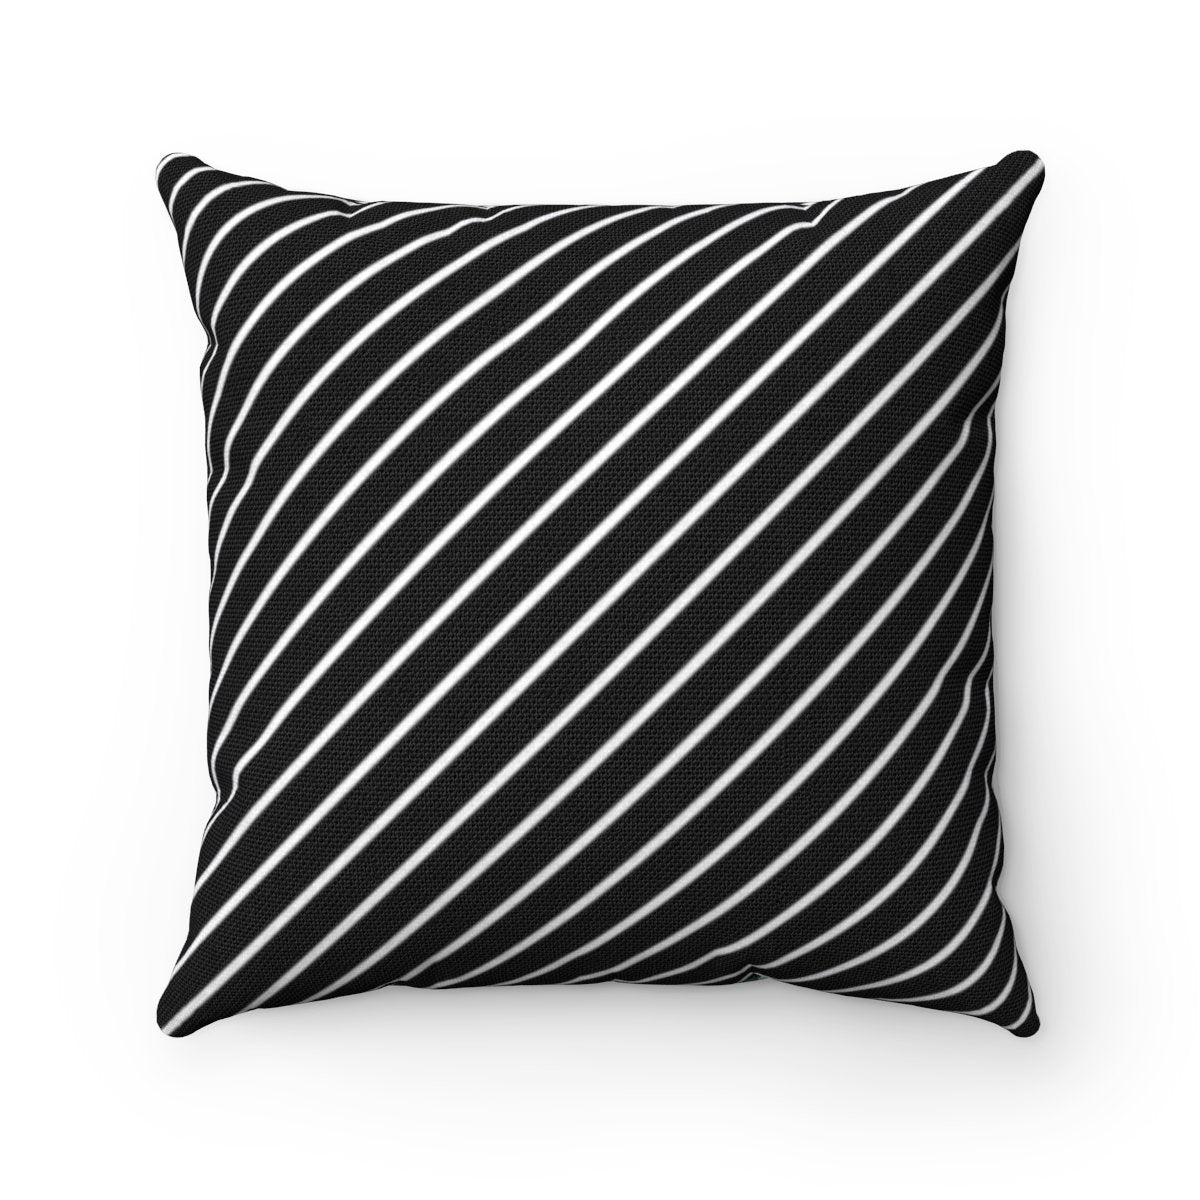 Luxury Rosa Striped Floral decorative cushion cover-Home Decor-Maison d'Elite-Très Elite